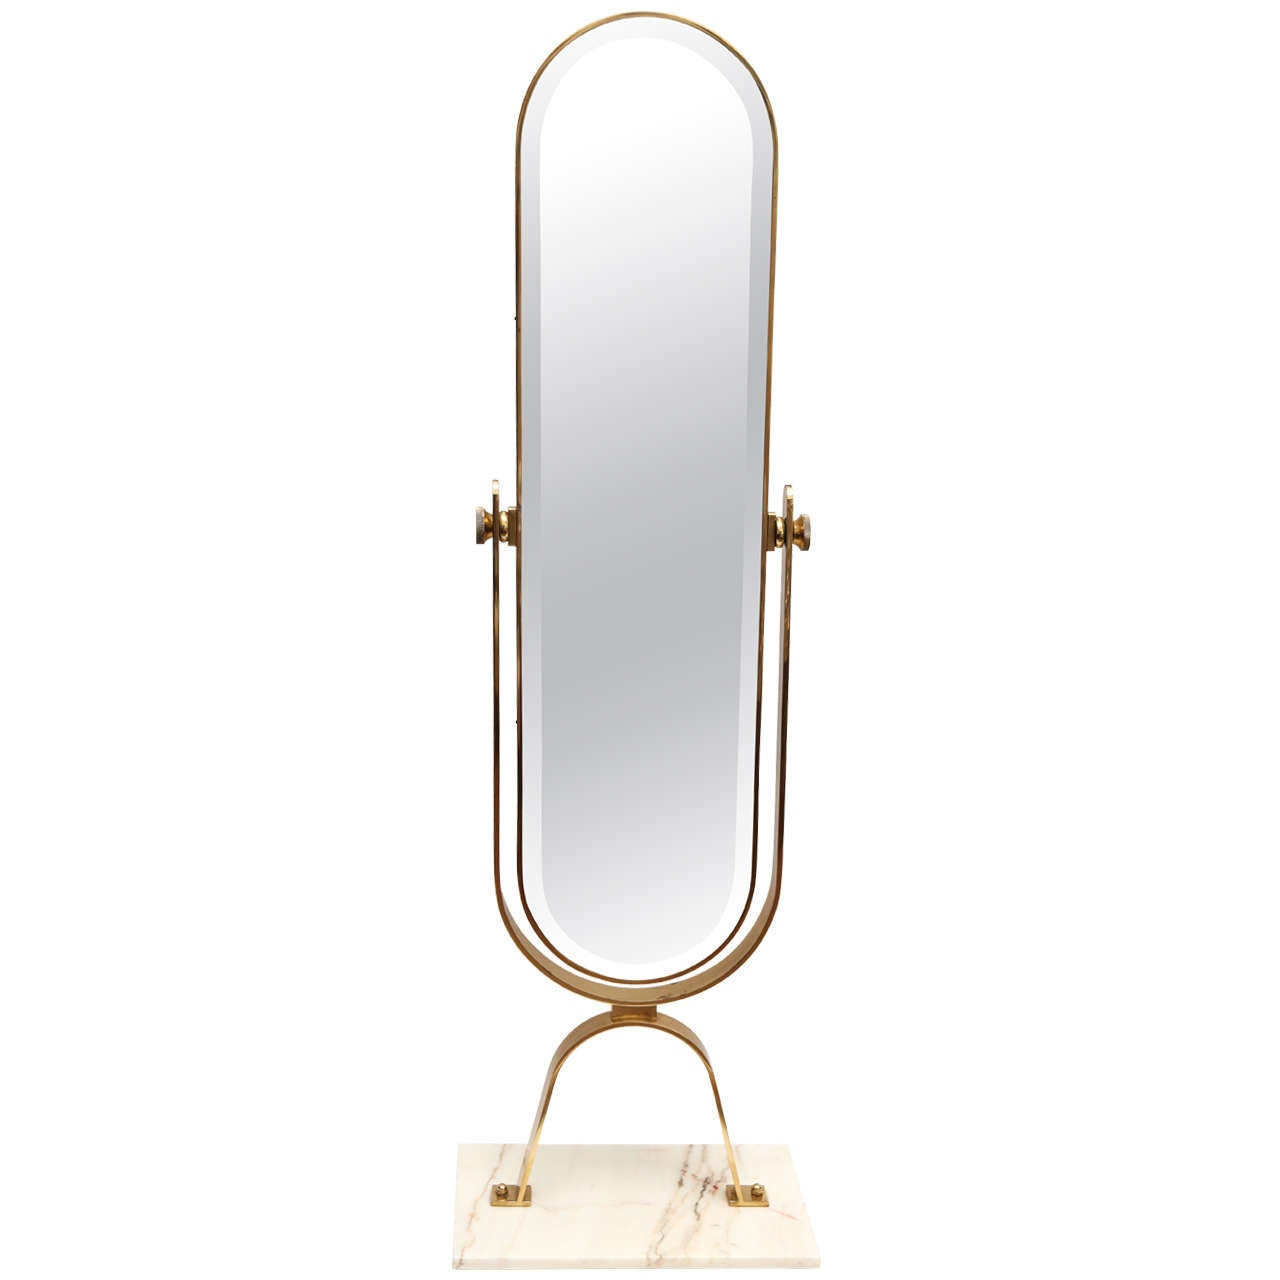 Italian brass cheval mirror at 1stdibs for Cheval mirror